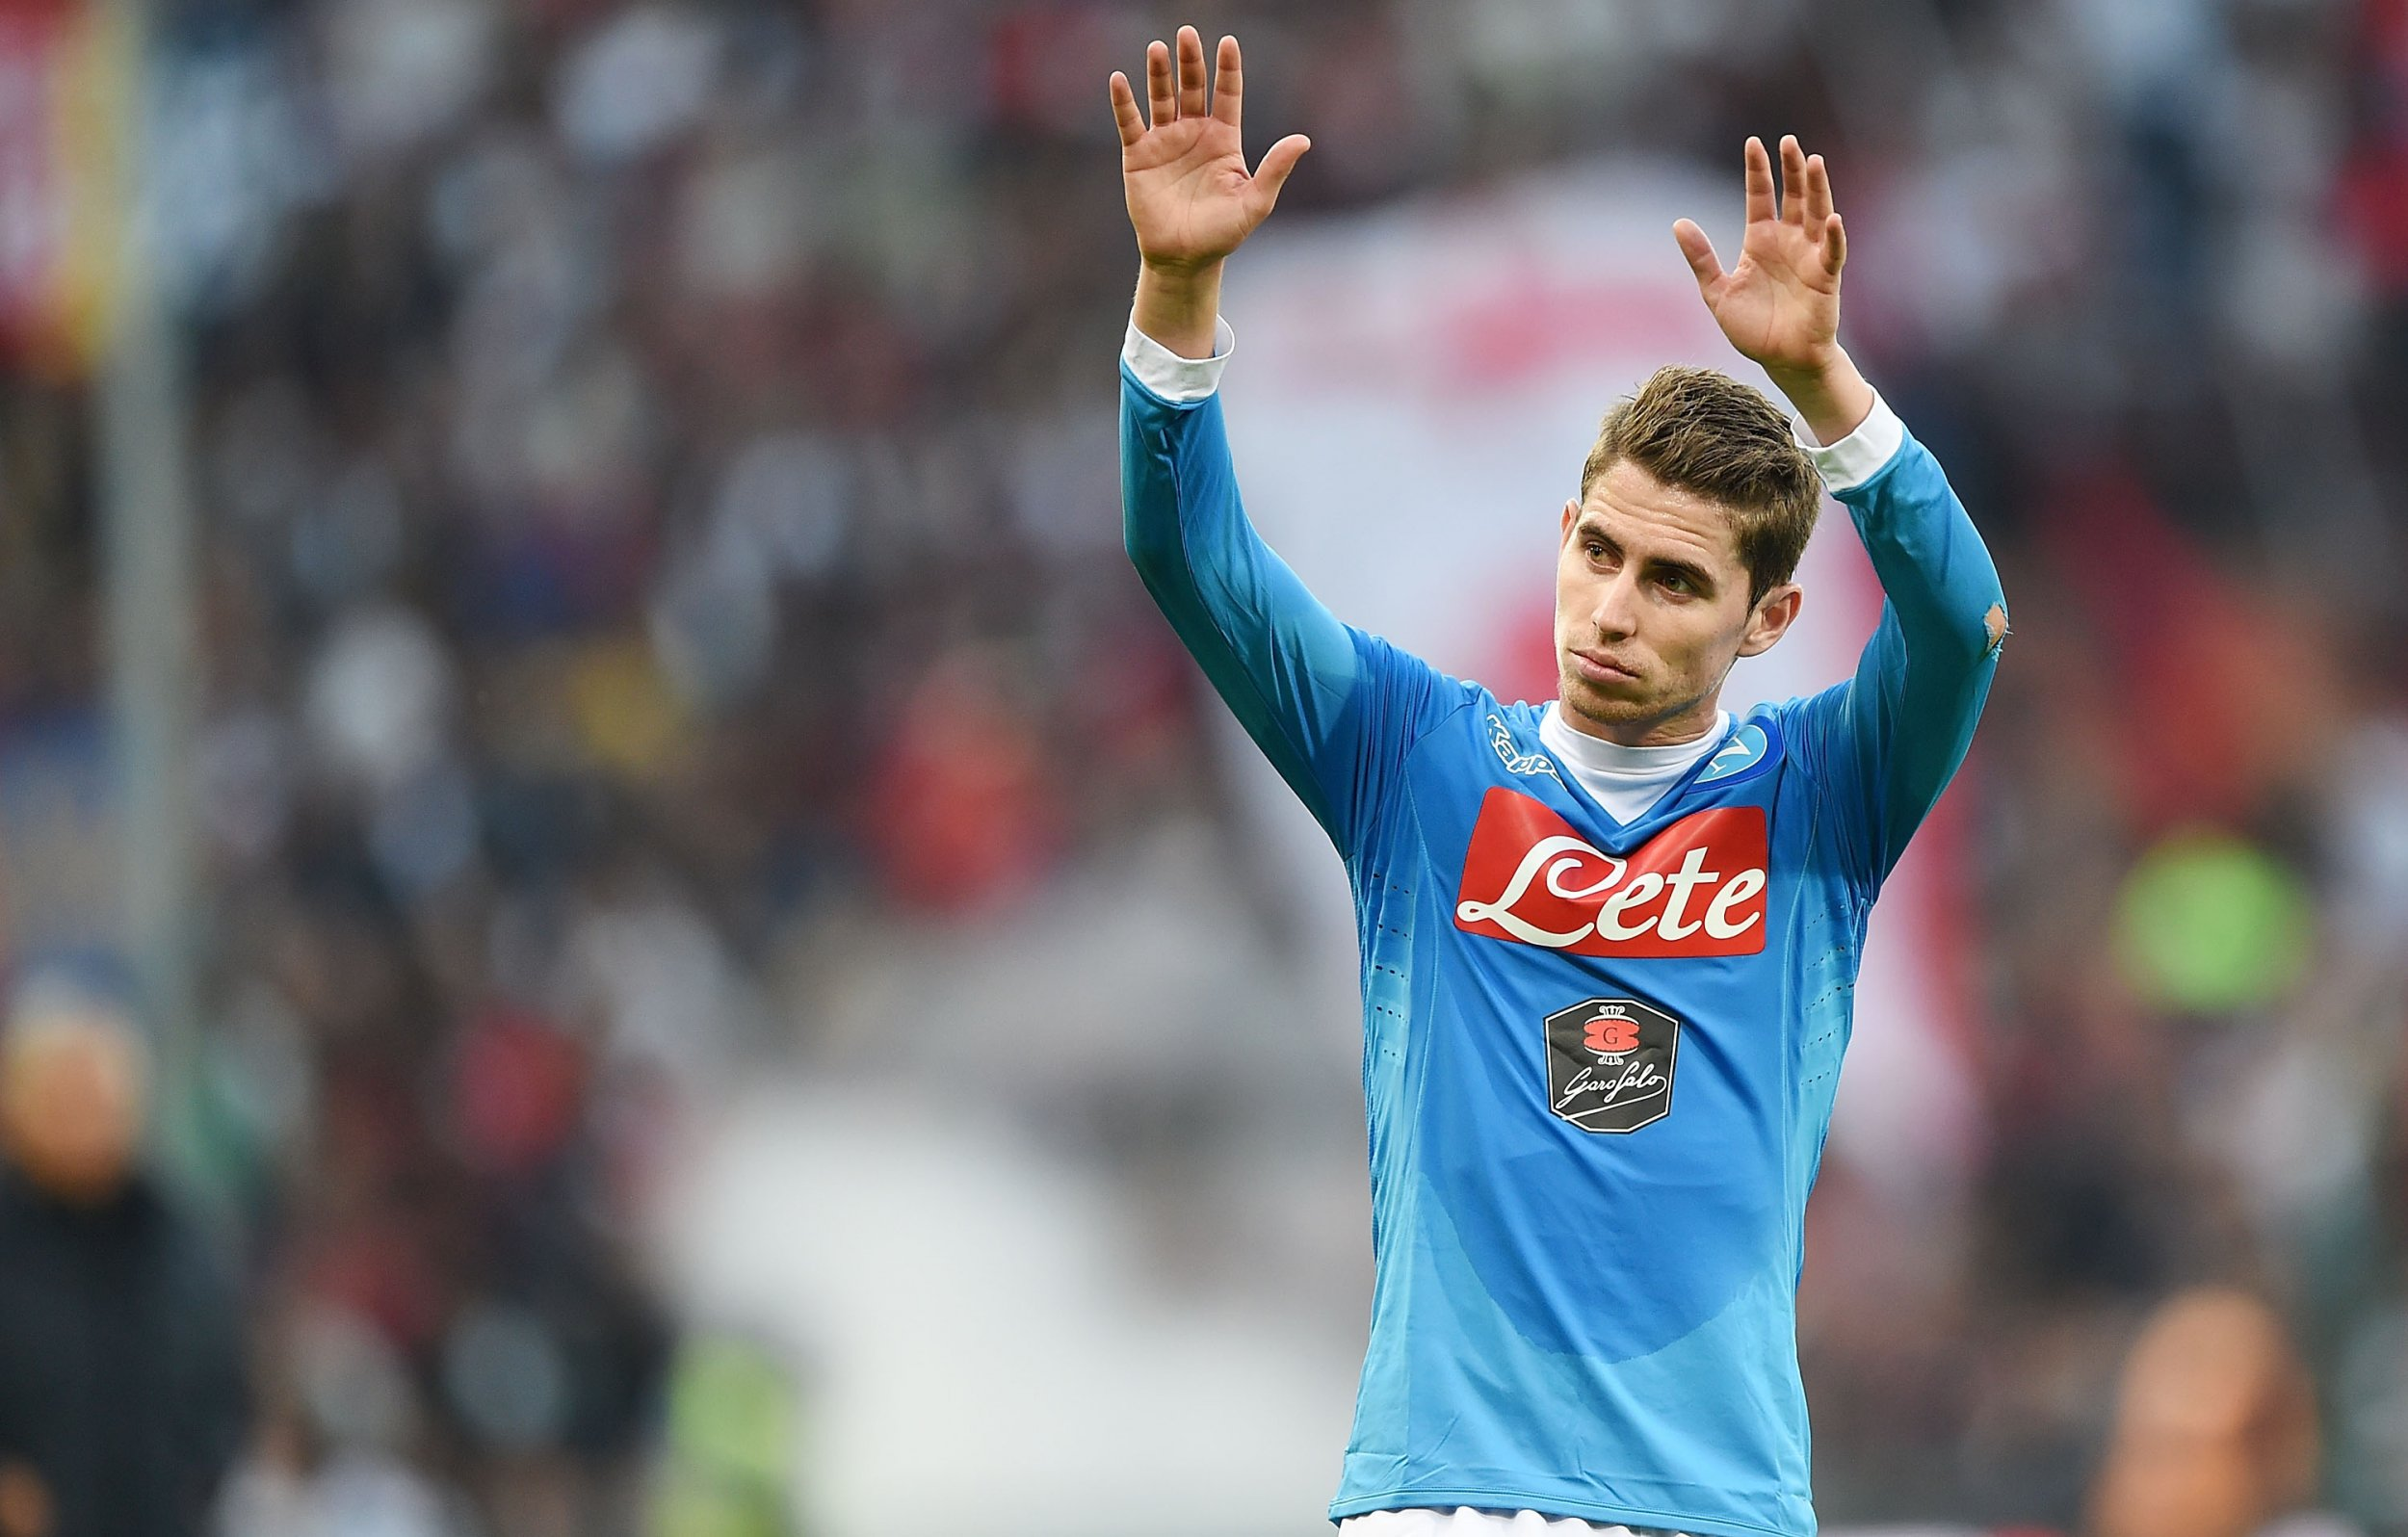 Jorginho of Napoli would be interested in a move to Arsenal.